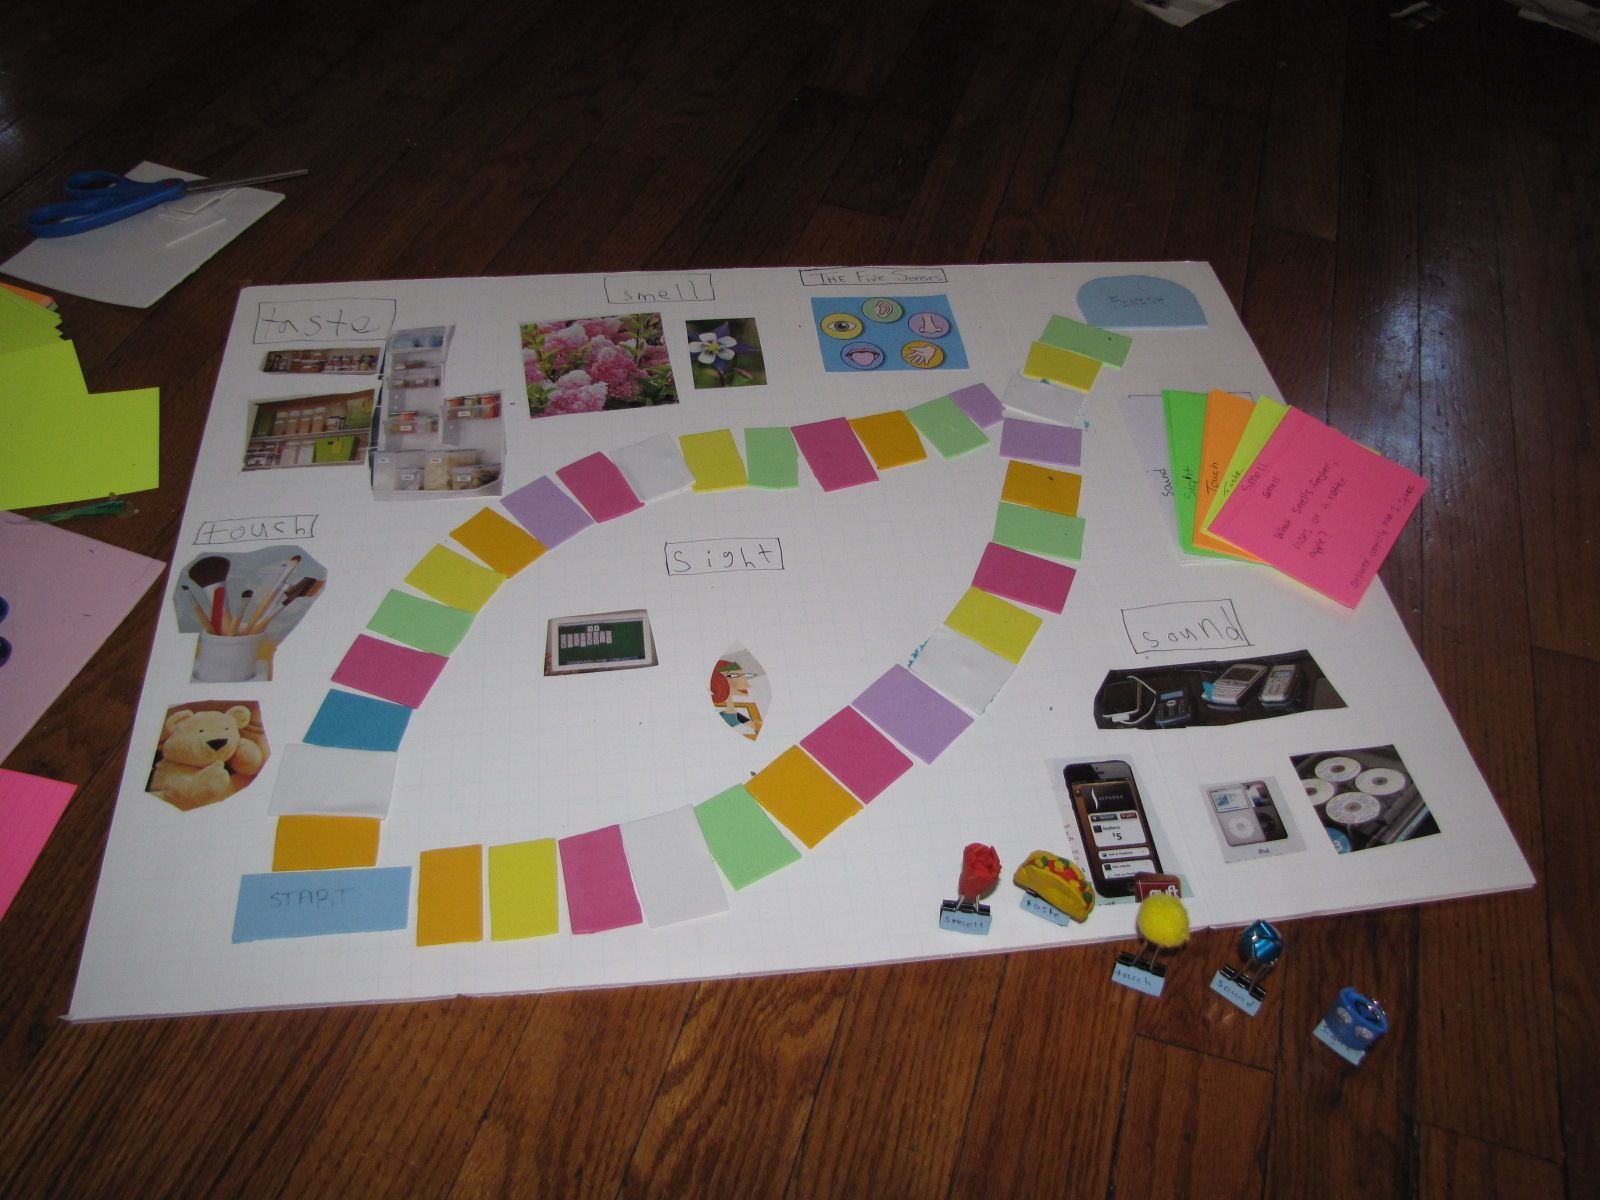 The 5 Senses Board Game